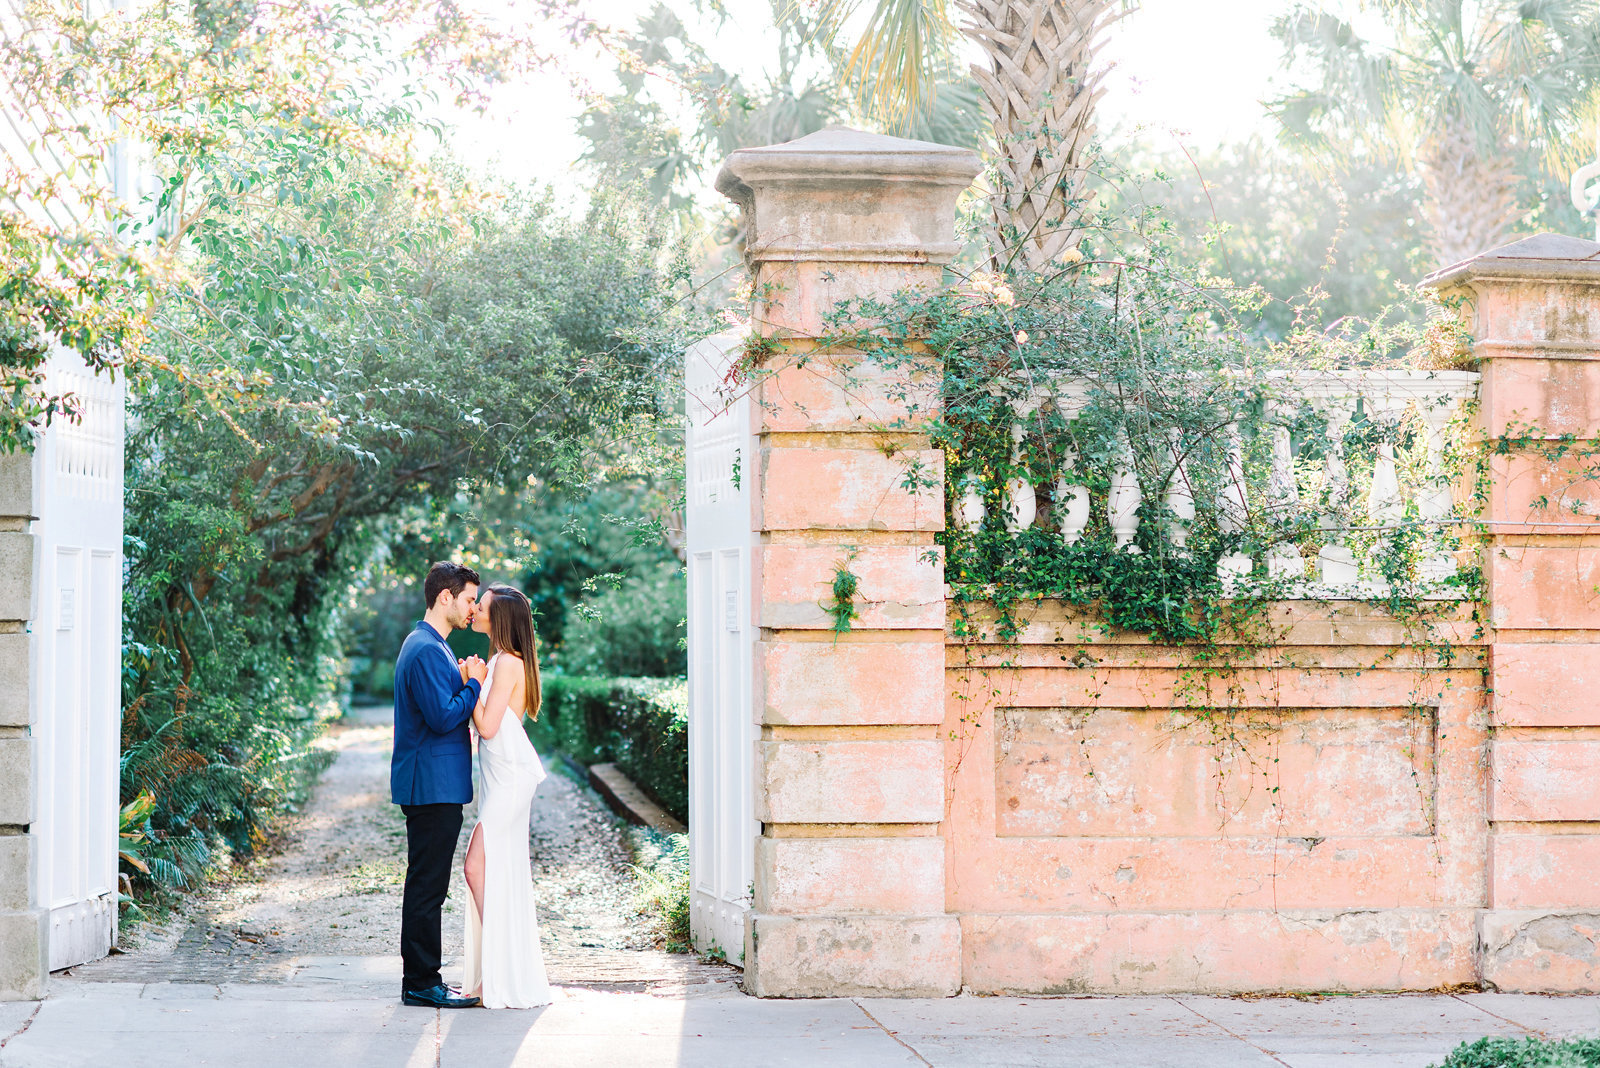 Downtown Charleston is a perfect place for engagement photography - top wedding photographers in SC